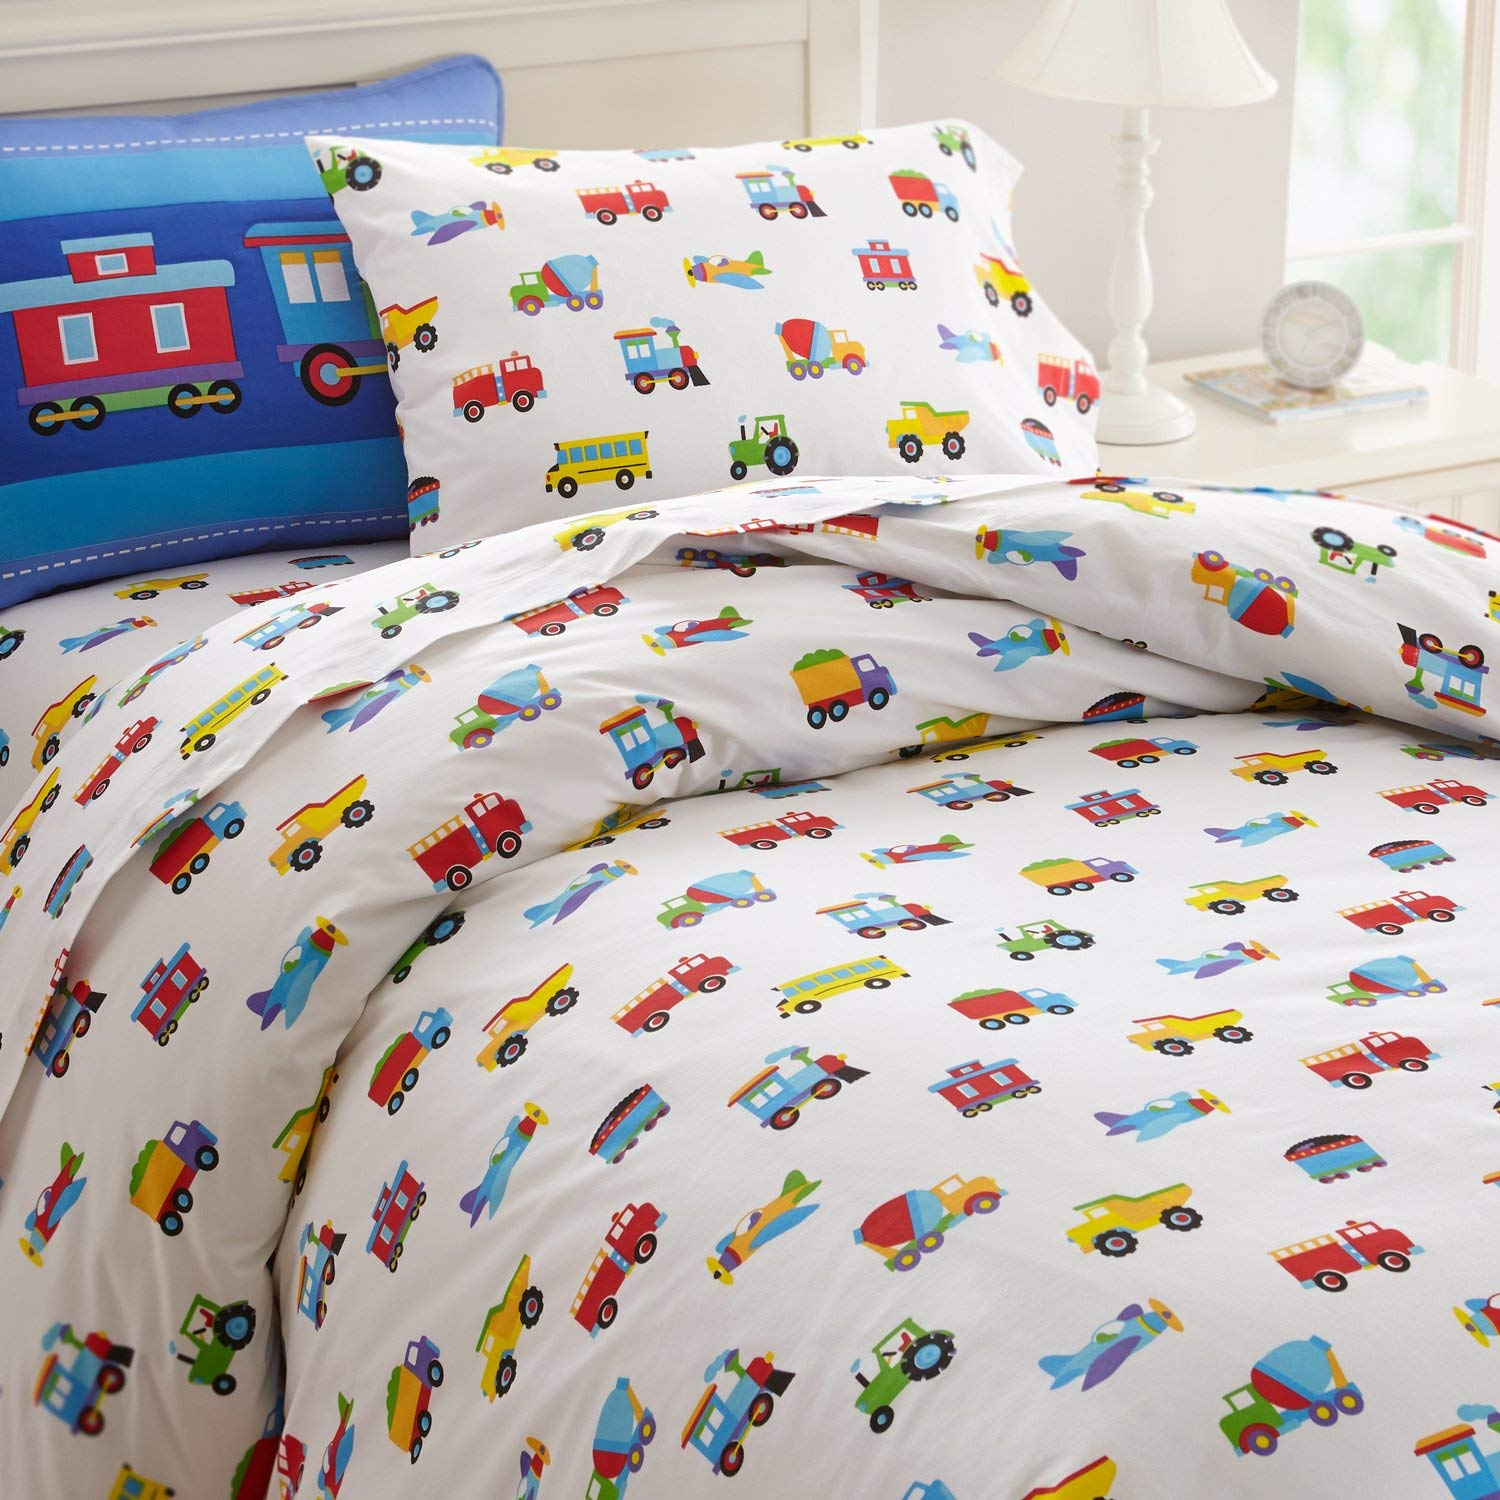 Trains, Planes and Trucks Duvet Cover